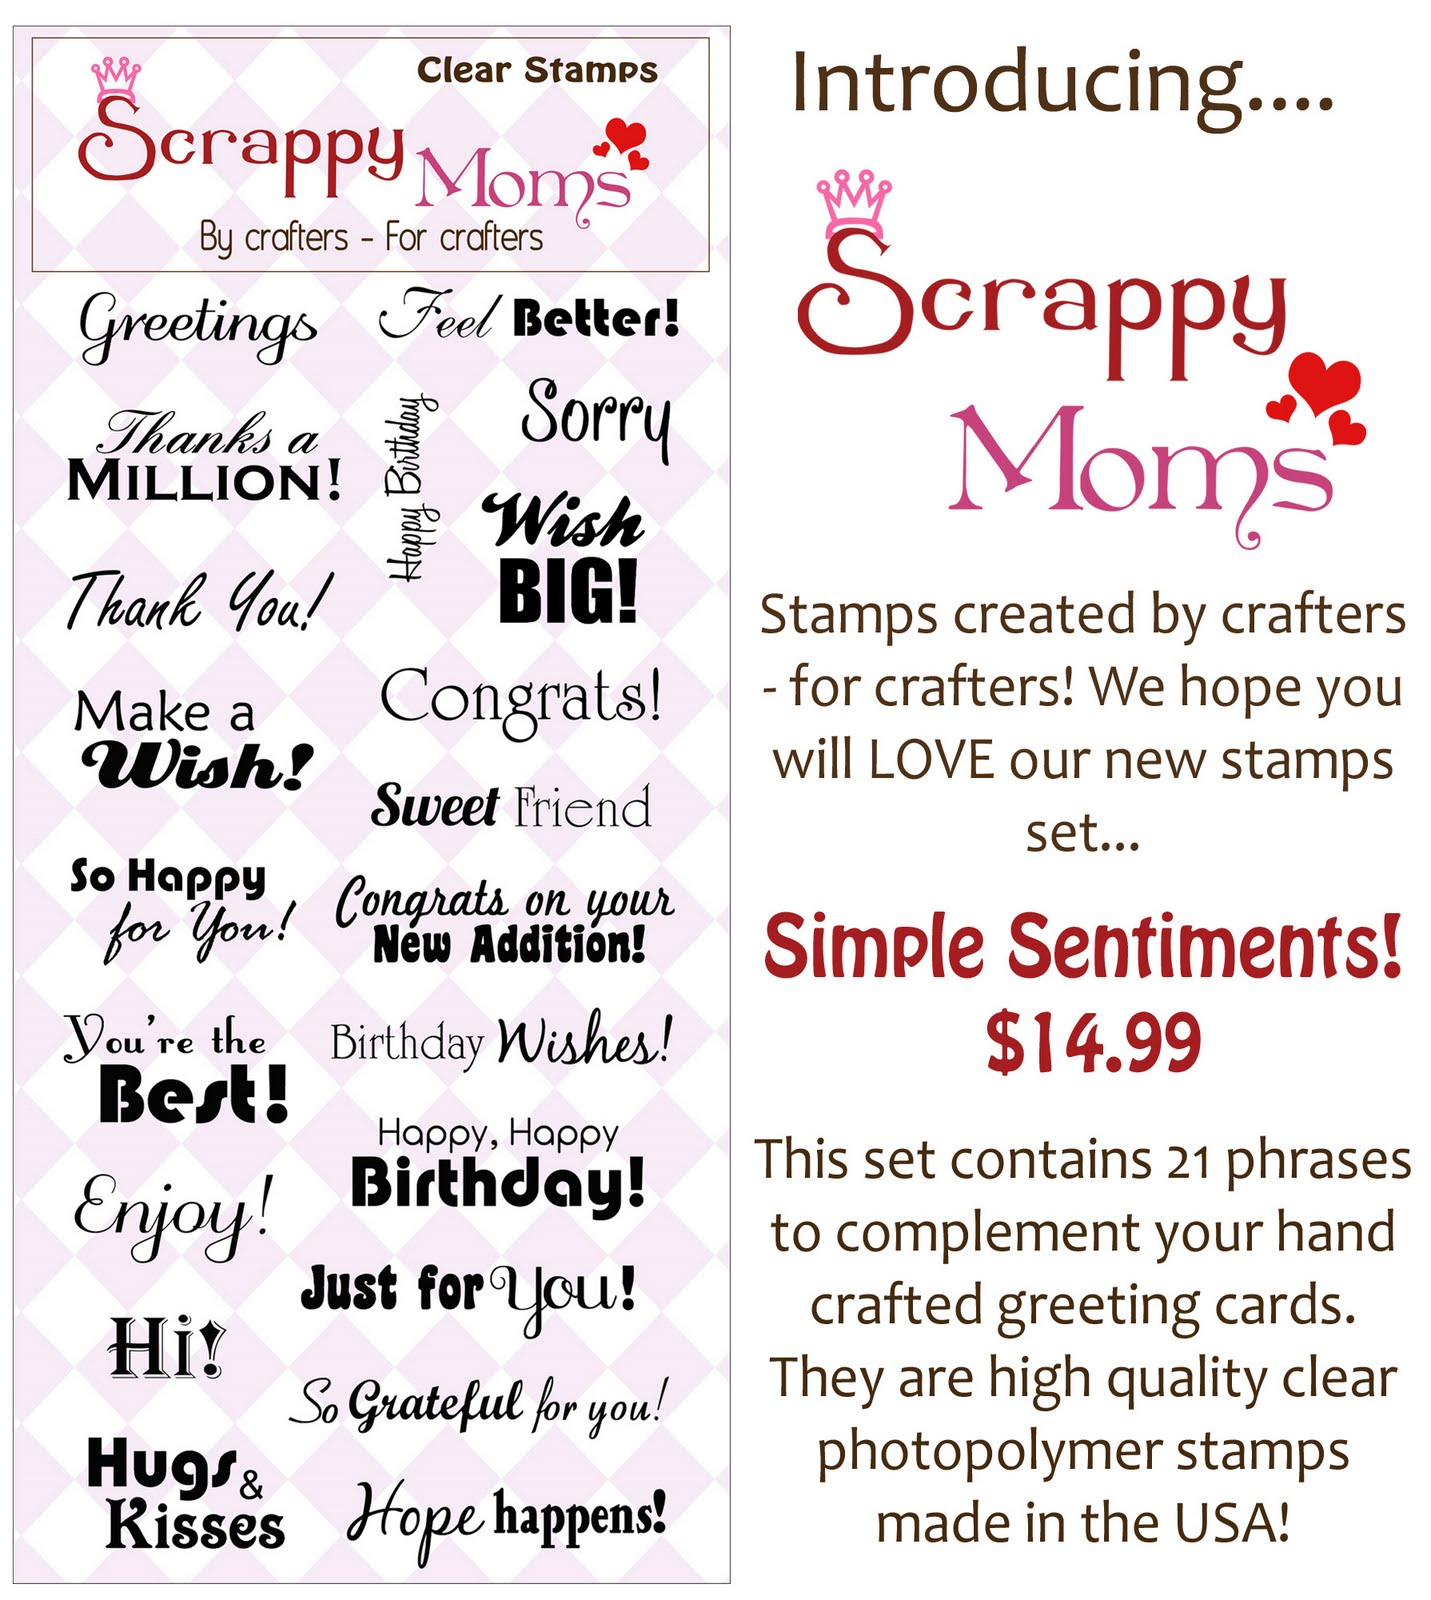 Scrappy Moms Stamps: November 2010